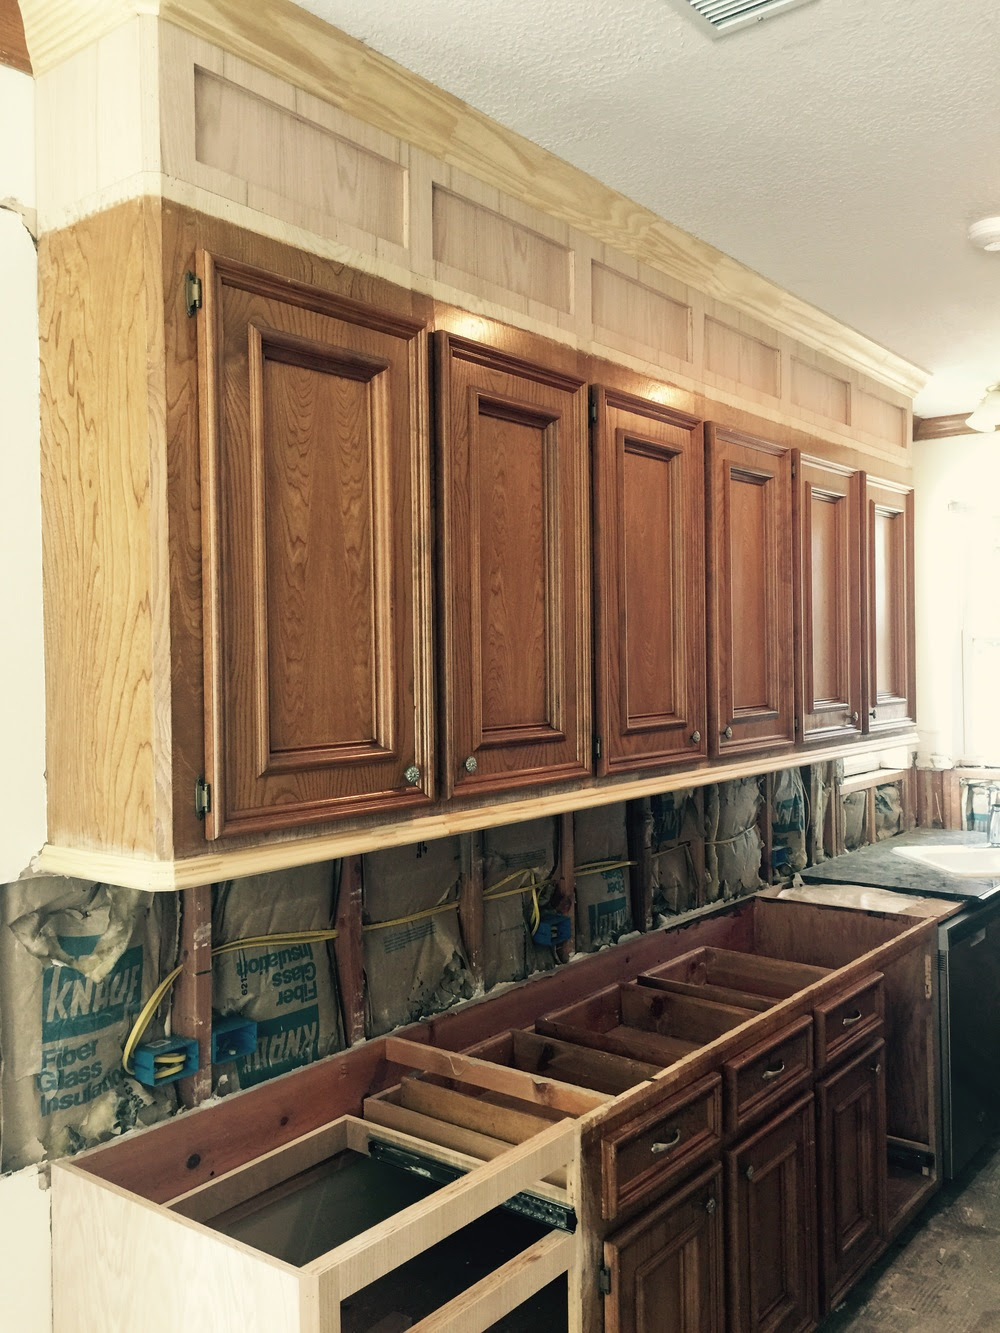 How To Make Ugly Cabinets Look Great! — DESIGNED